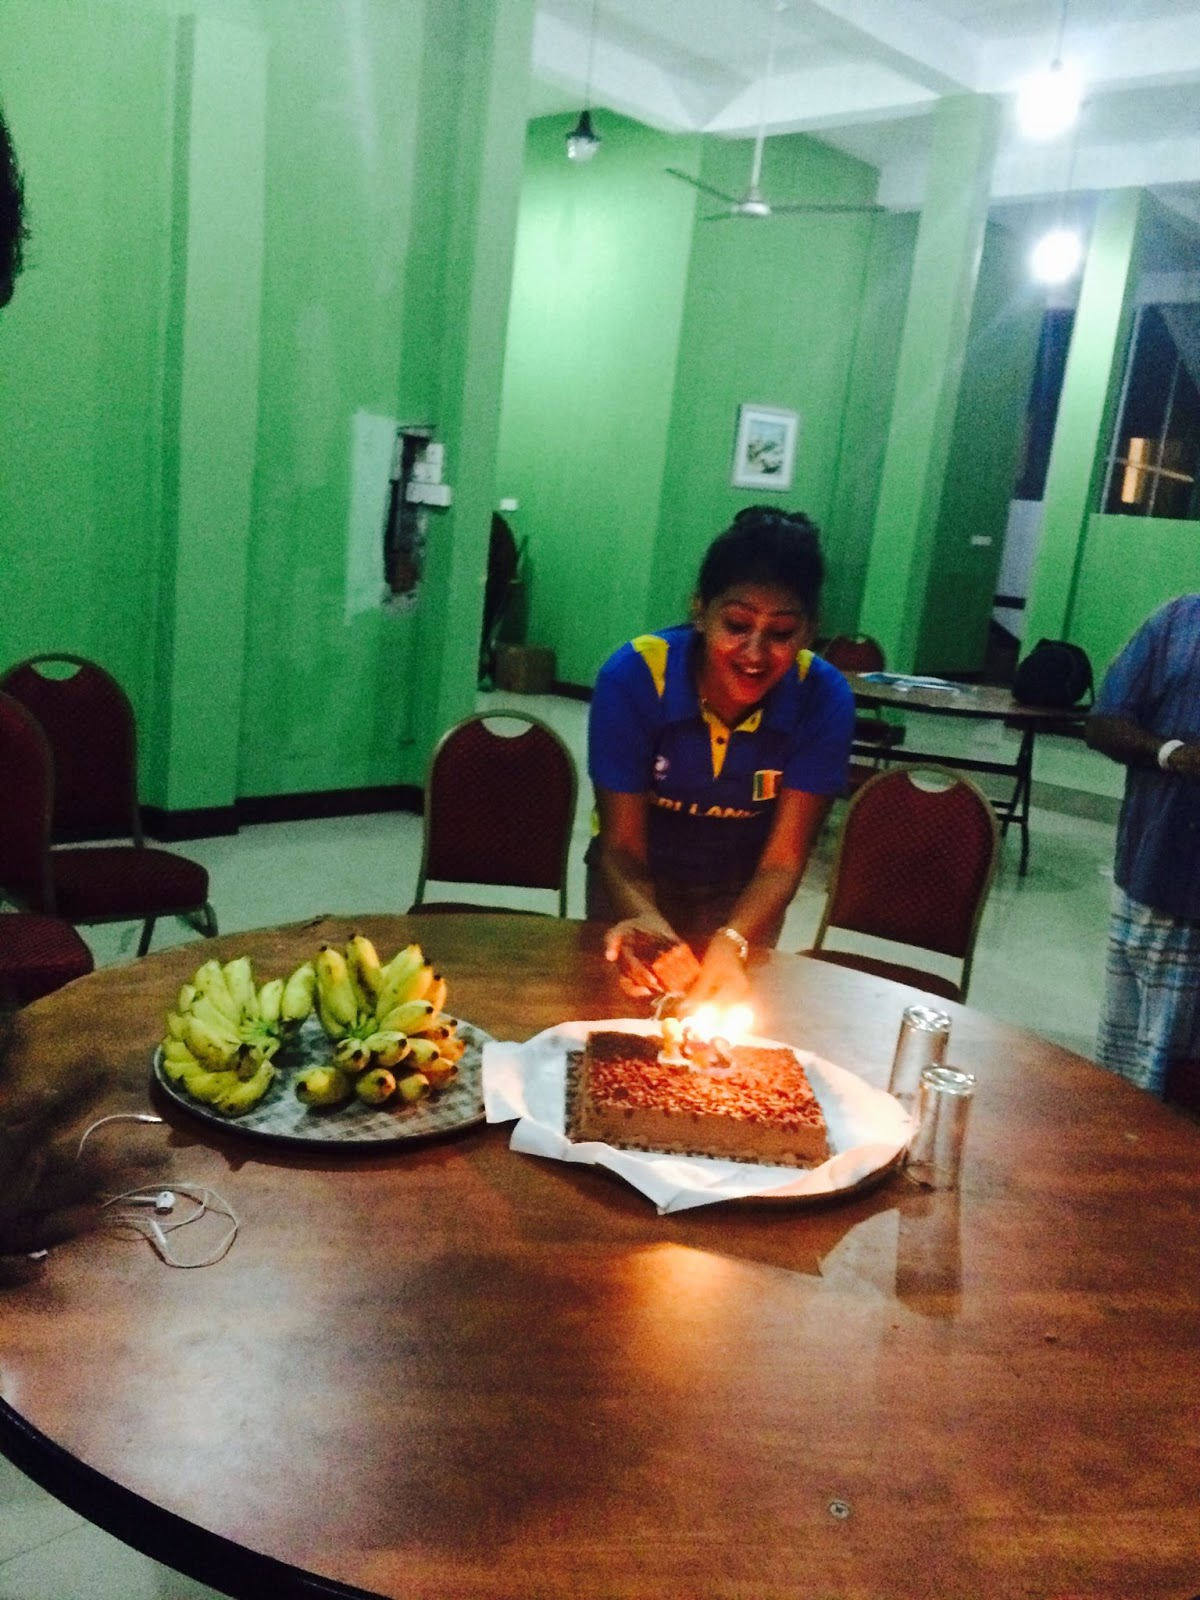 piumi hansamali cutting birthday cake